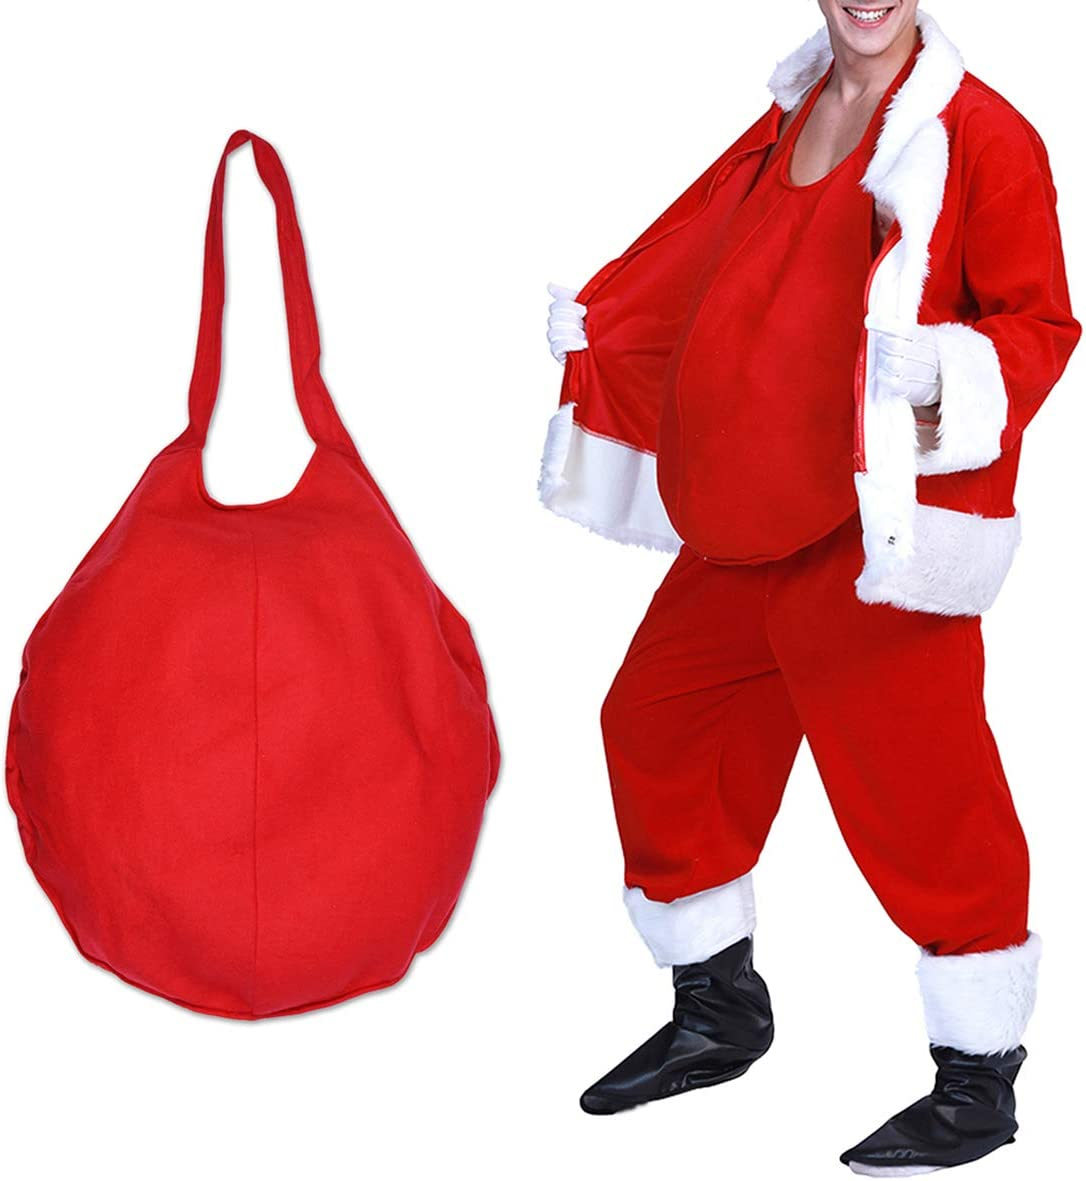 Feynman Santa Claus Fake Belly Christmas Costume Accessories